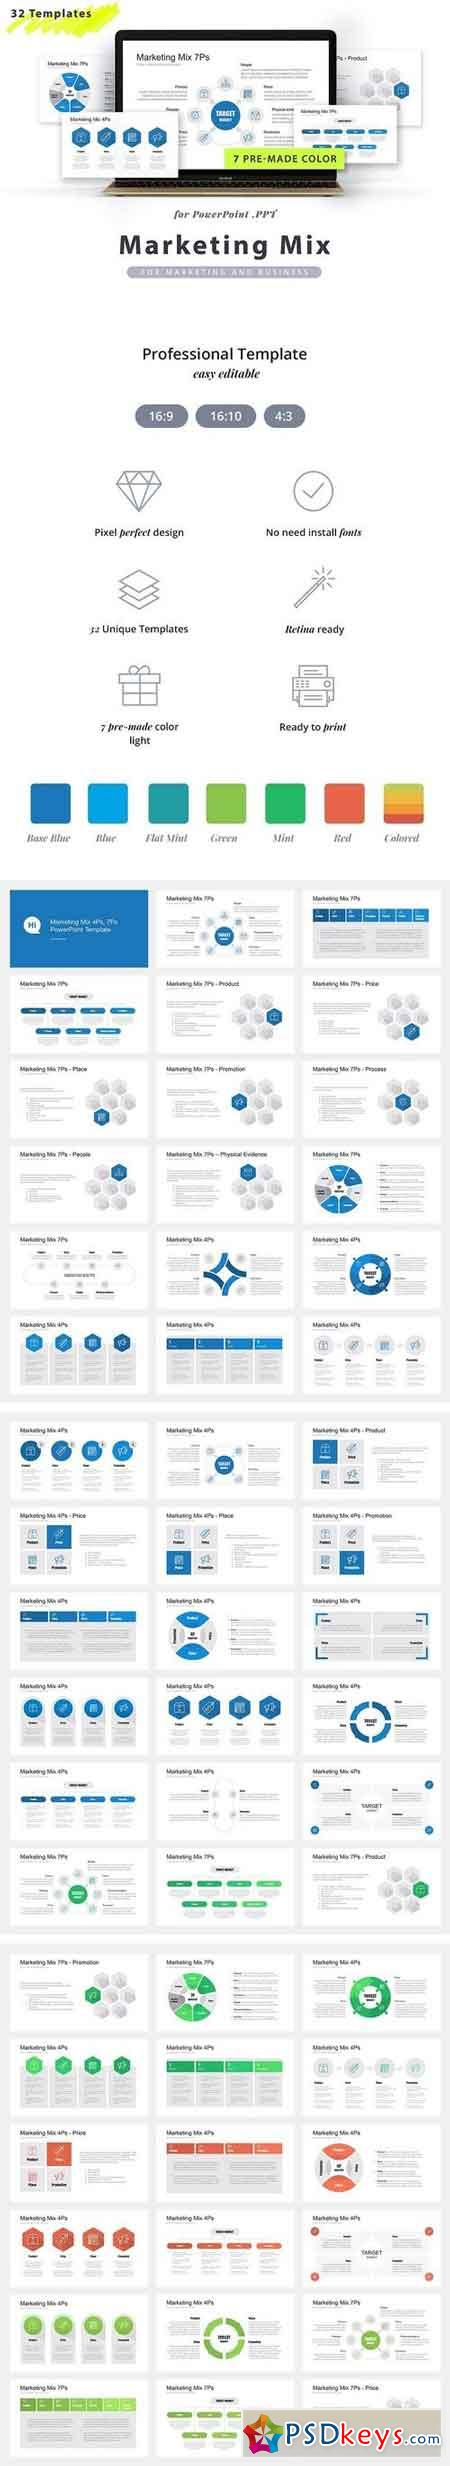 Marketing Mix PPT Template 2091056